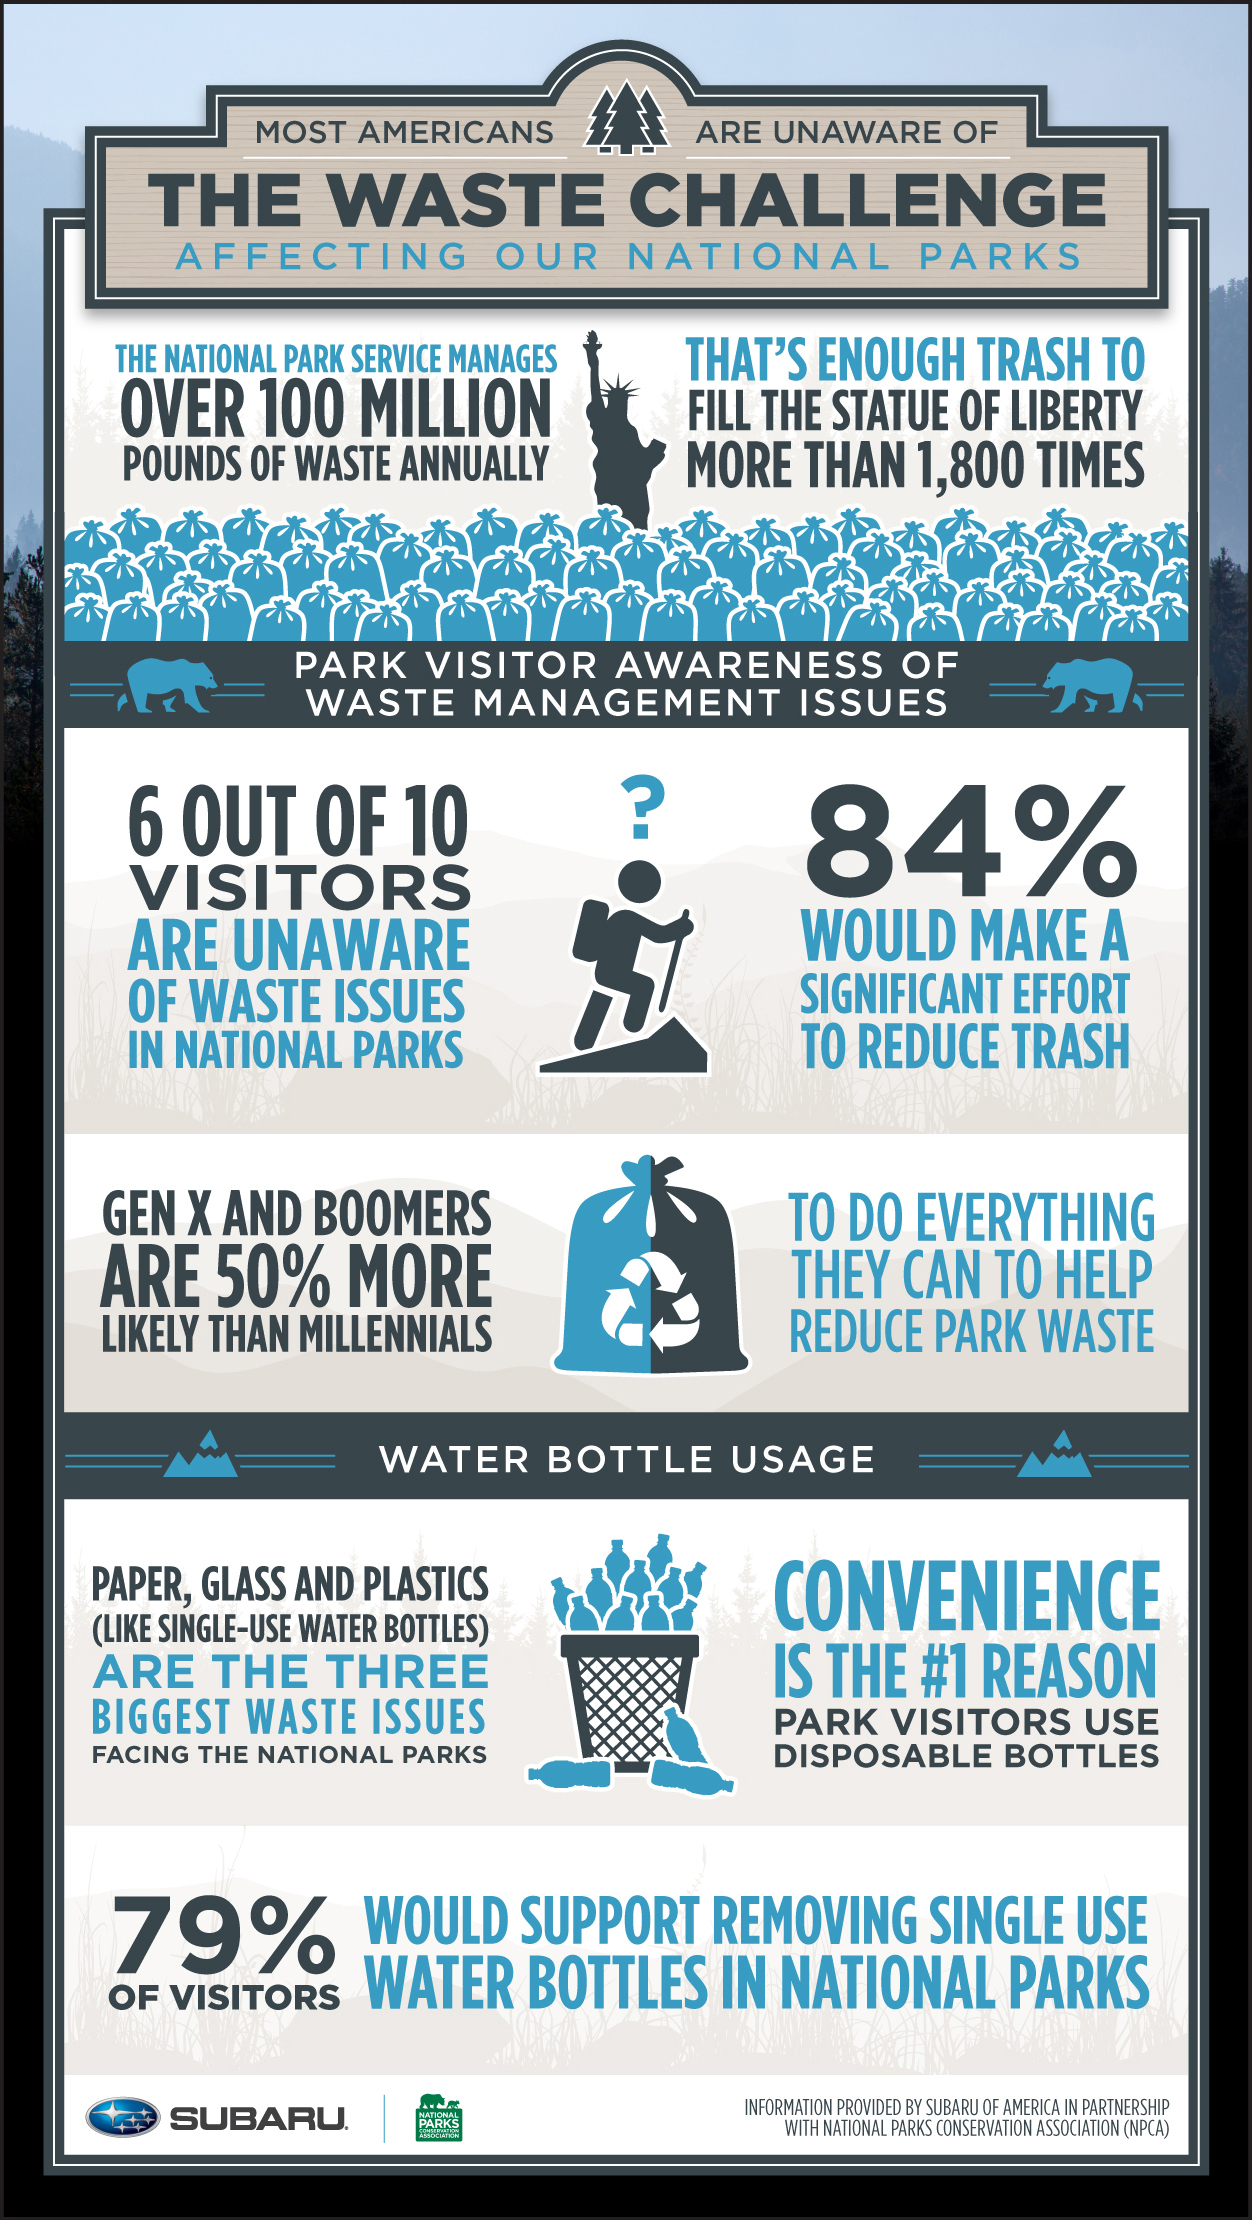 news study reveals lack awareness waste challenges facing national parks